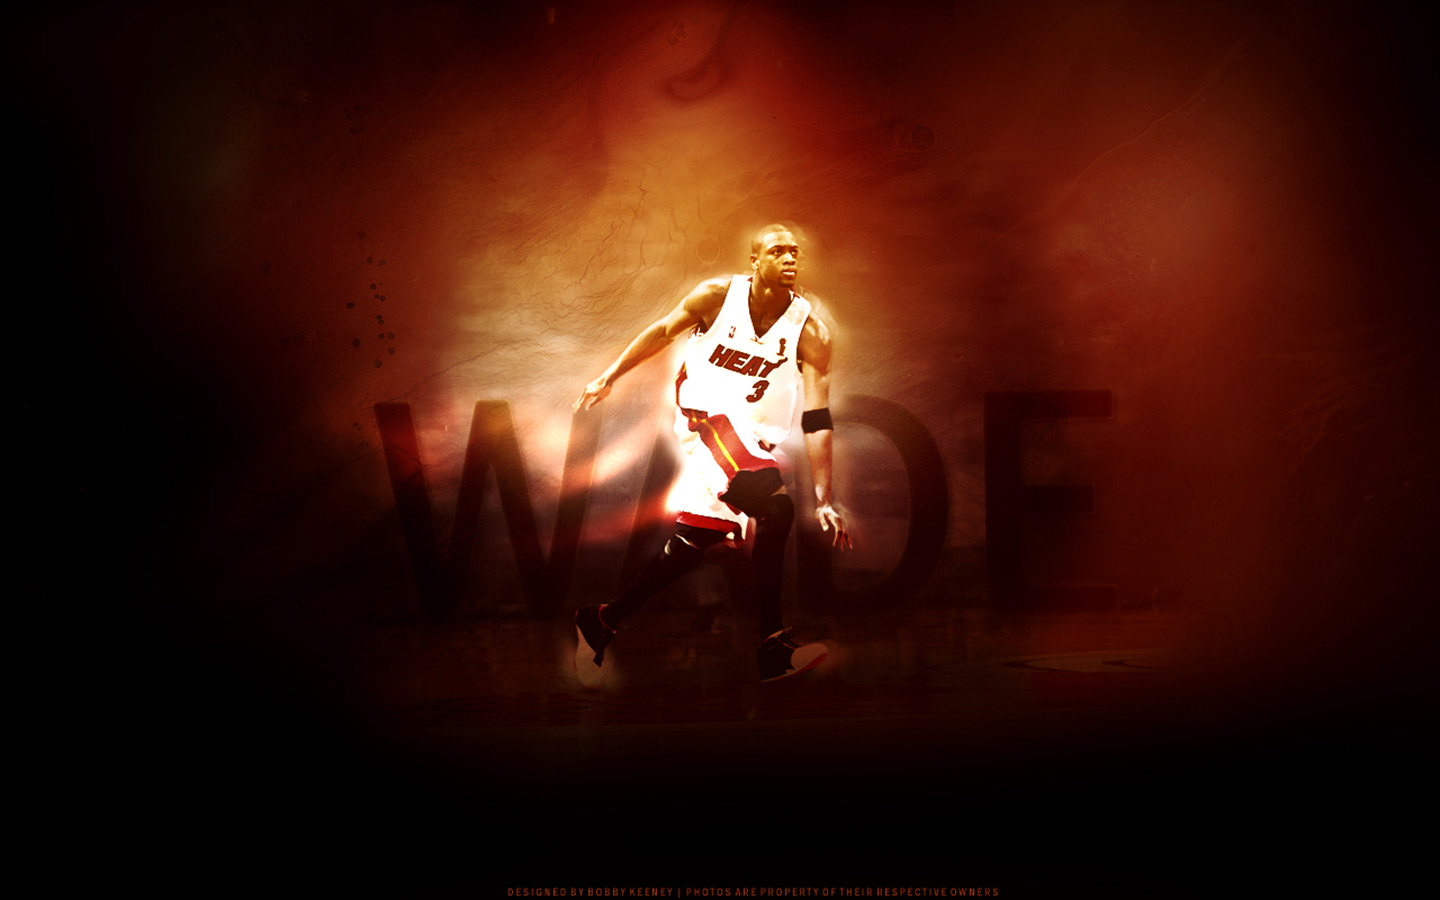 Dwyane Wade Wallpaper Big Fan of NBA   Daily Update 1440x900